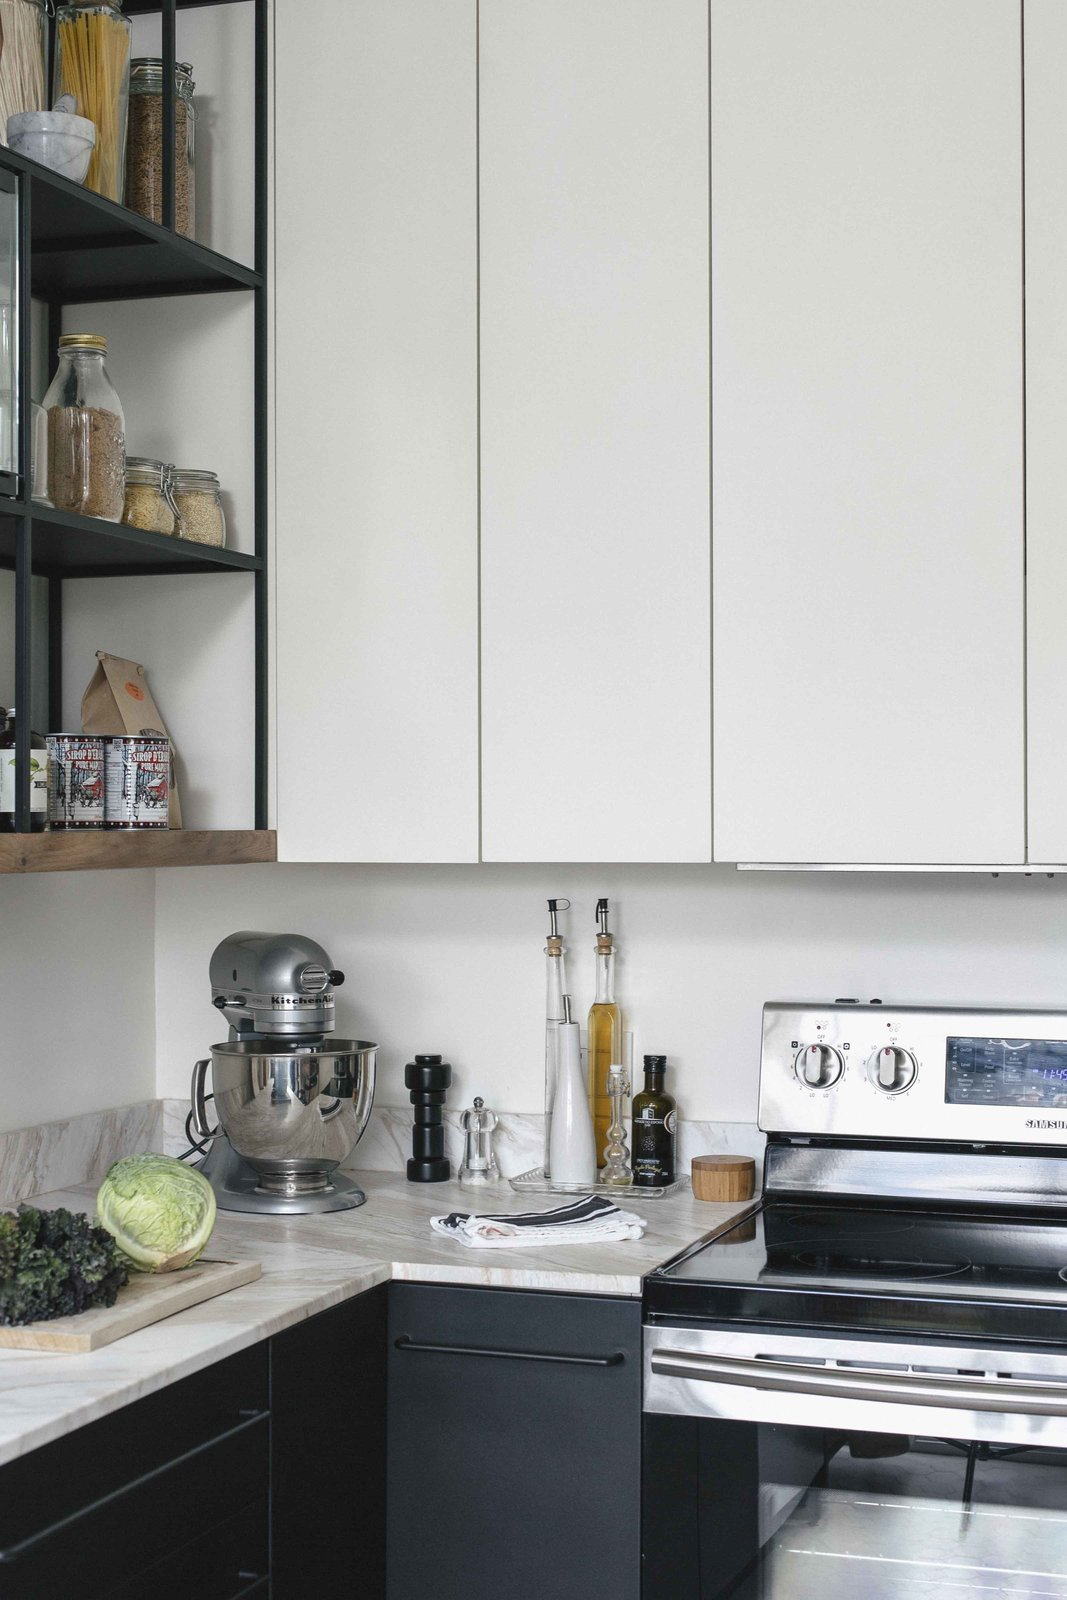 montreal-kitchen-renovation-with-metal-appliances